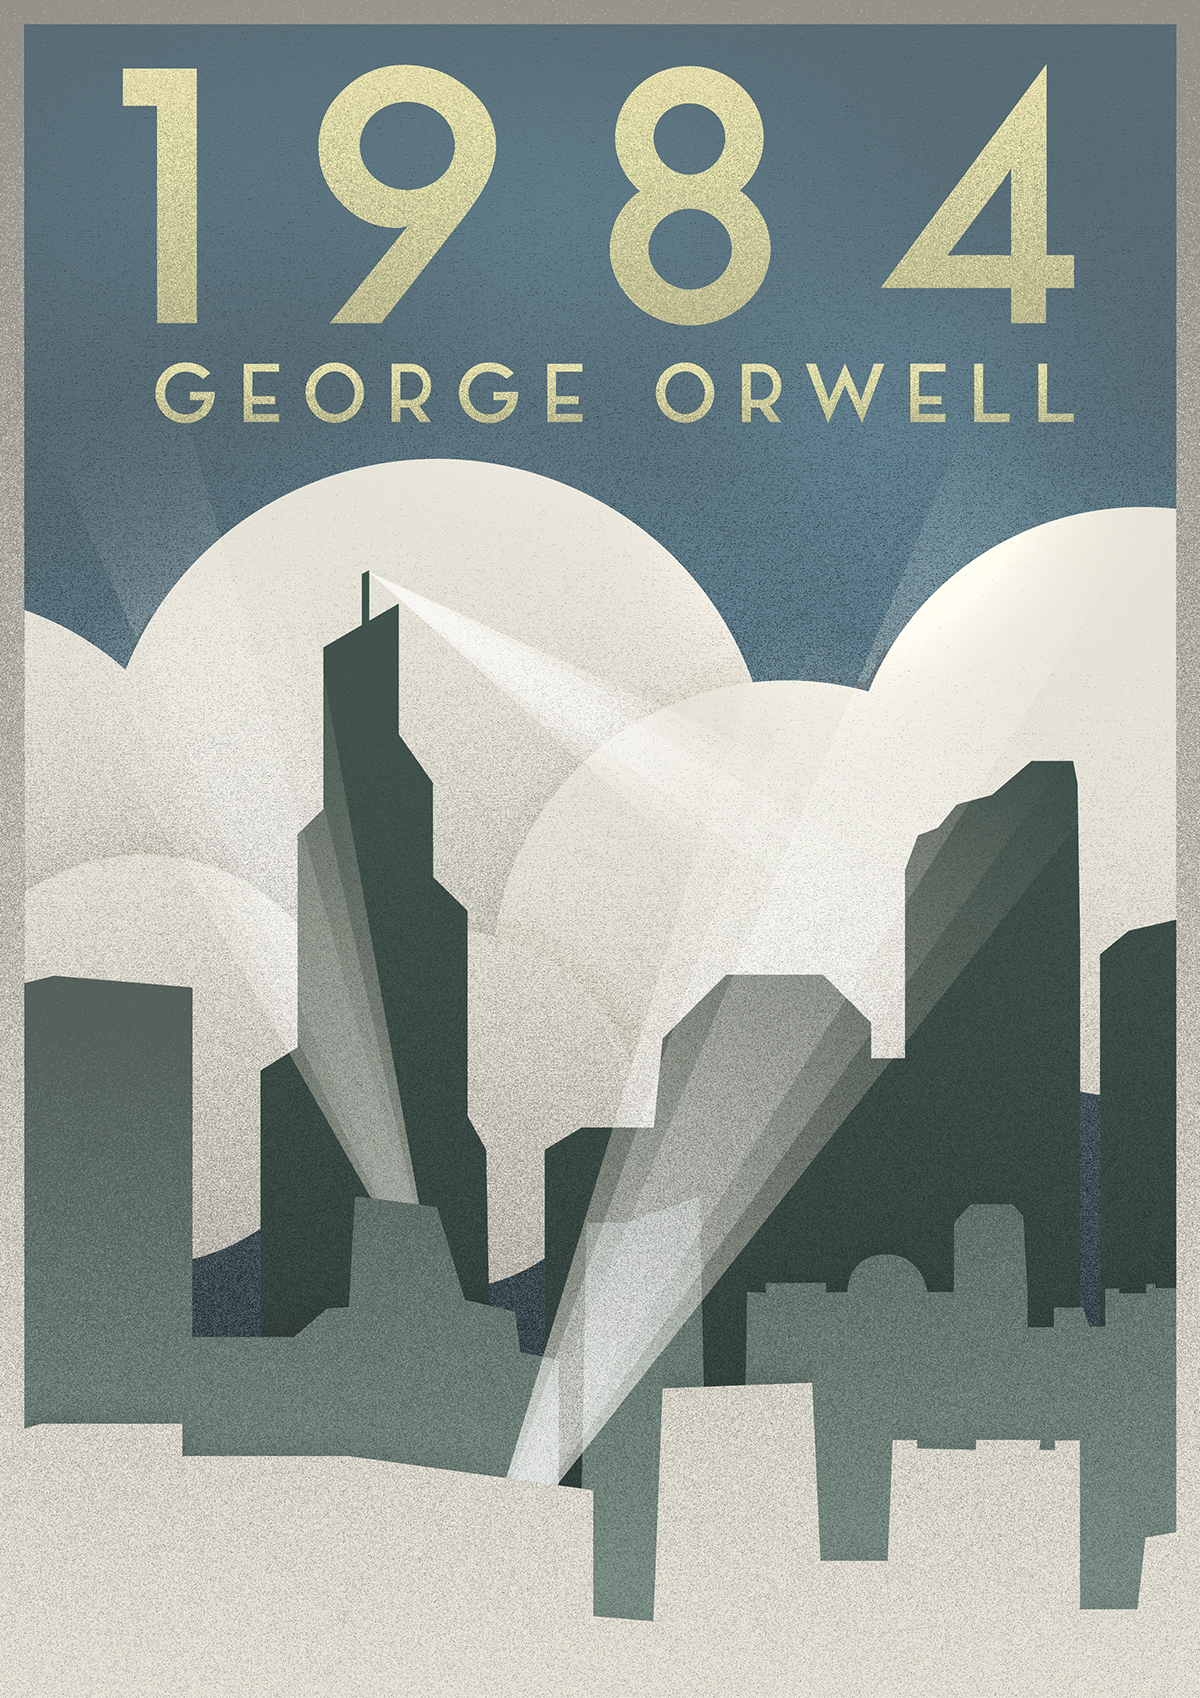 Deco Poster George Orwell 1984 Art Deco Poster On Behance